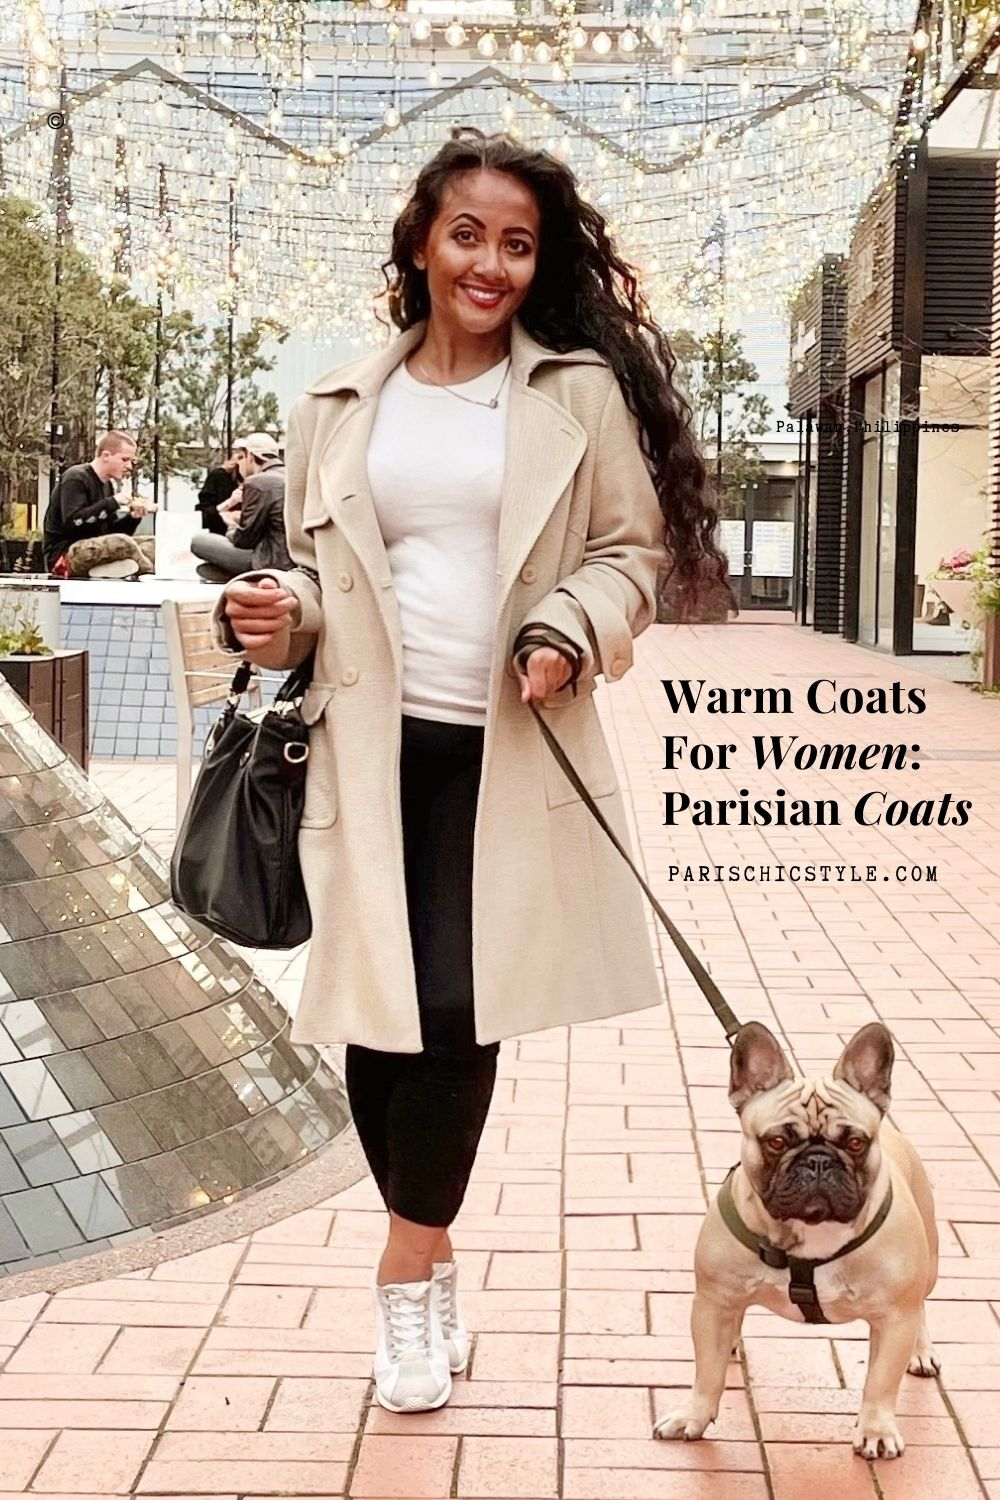 Best Coats For Women Travel Sightseeing Streetstyle Walking Work Weddings Paris Chic Style Trench Coats Peacoats Faux Fur Teddy Coats Puffer